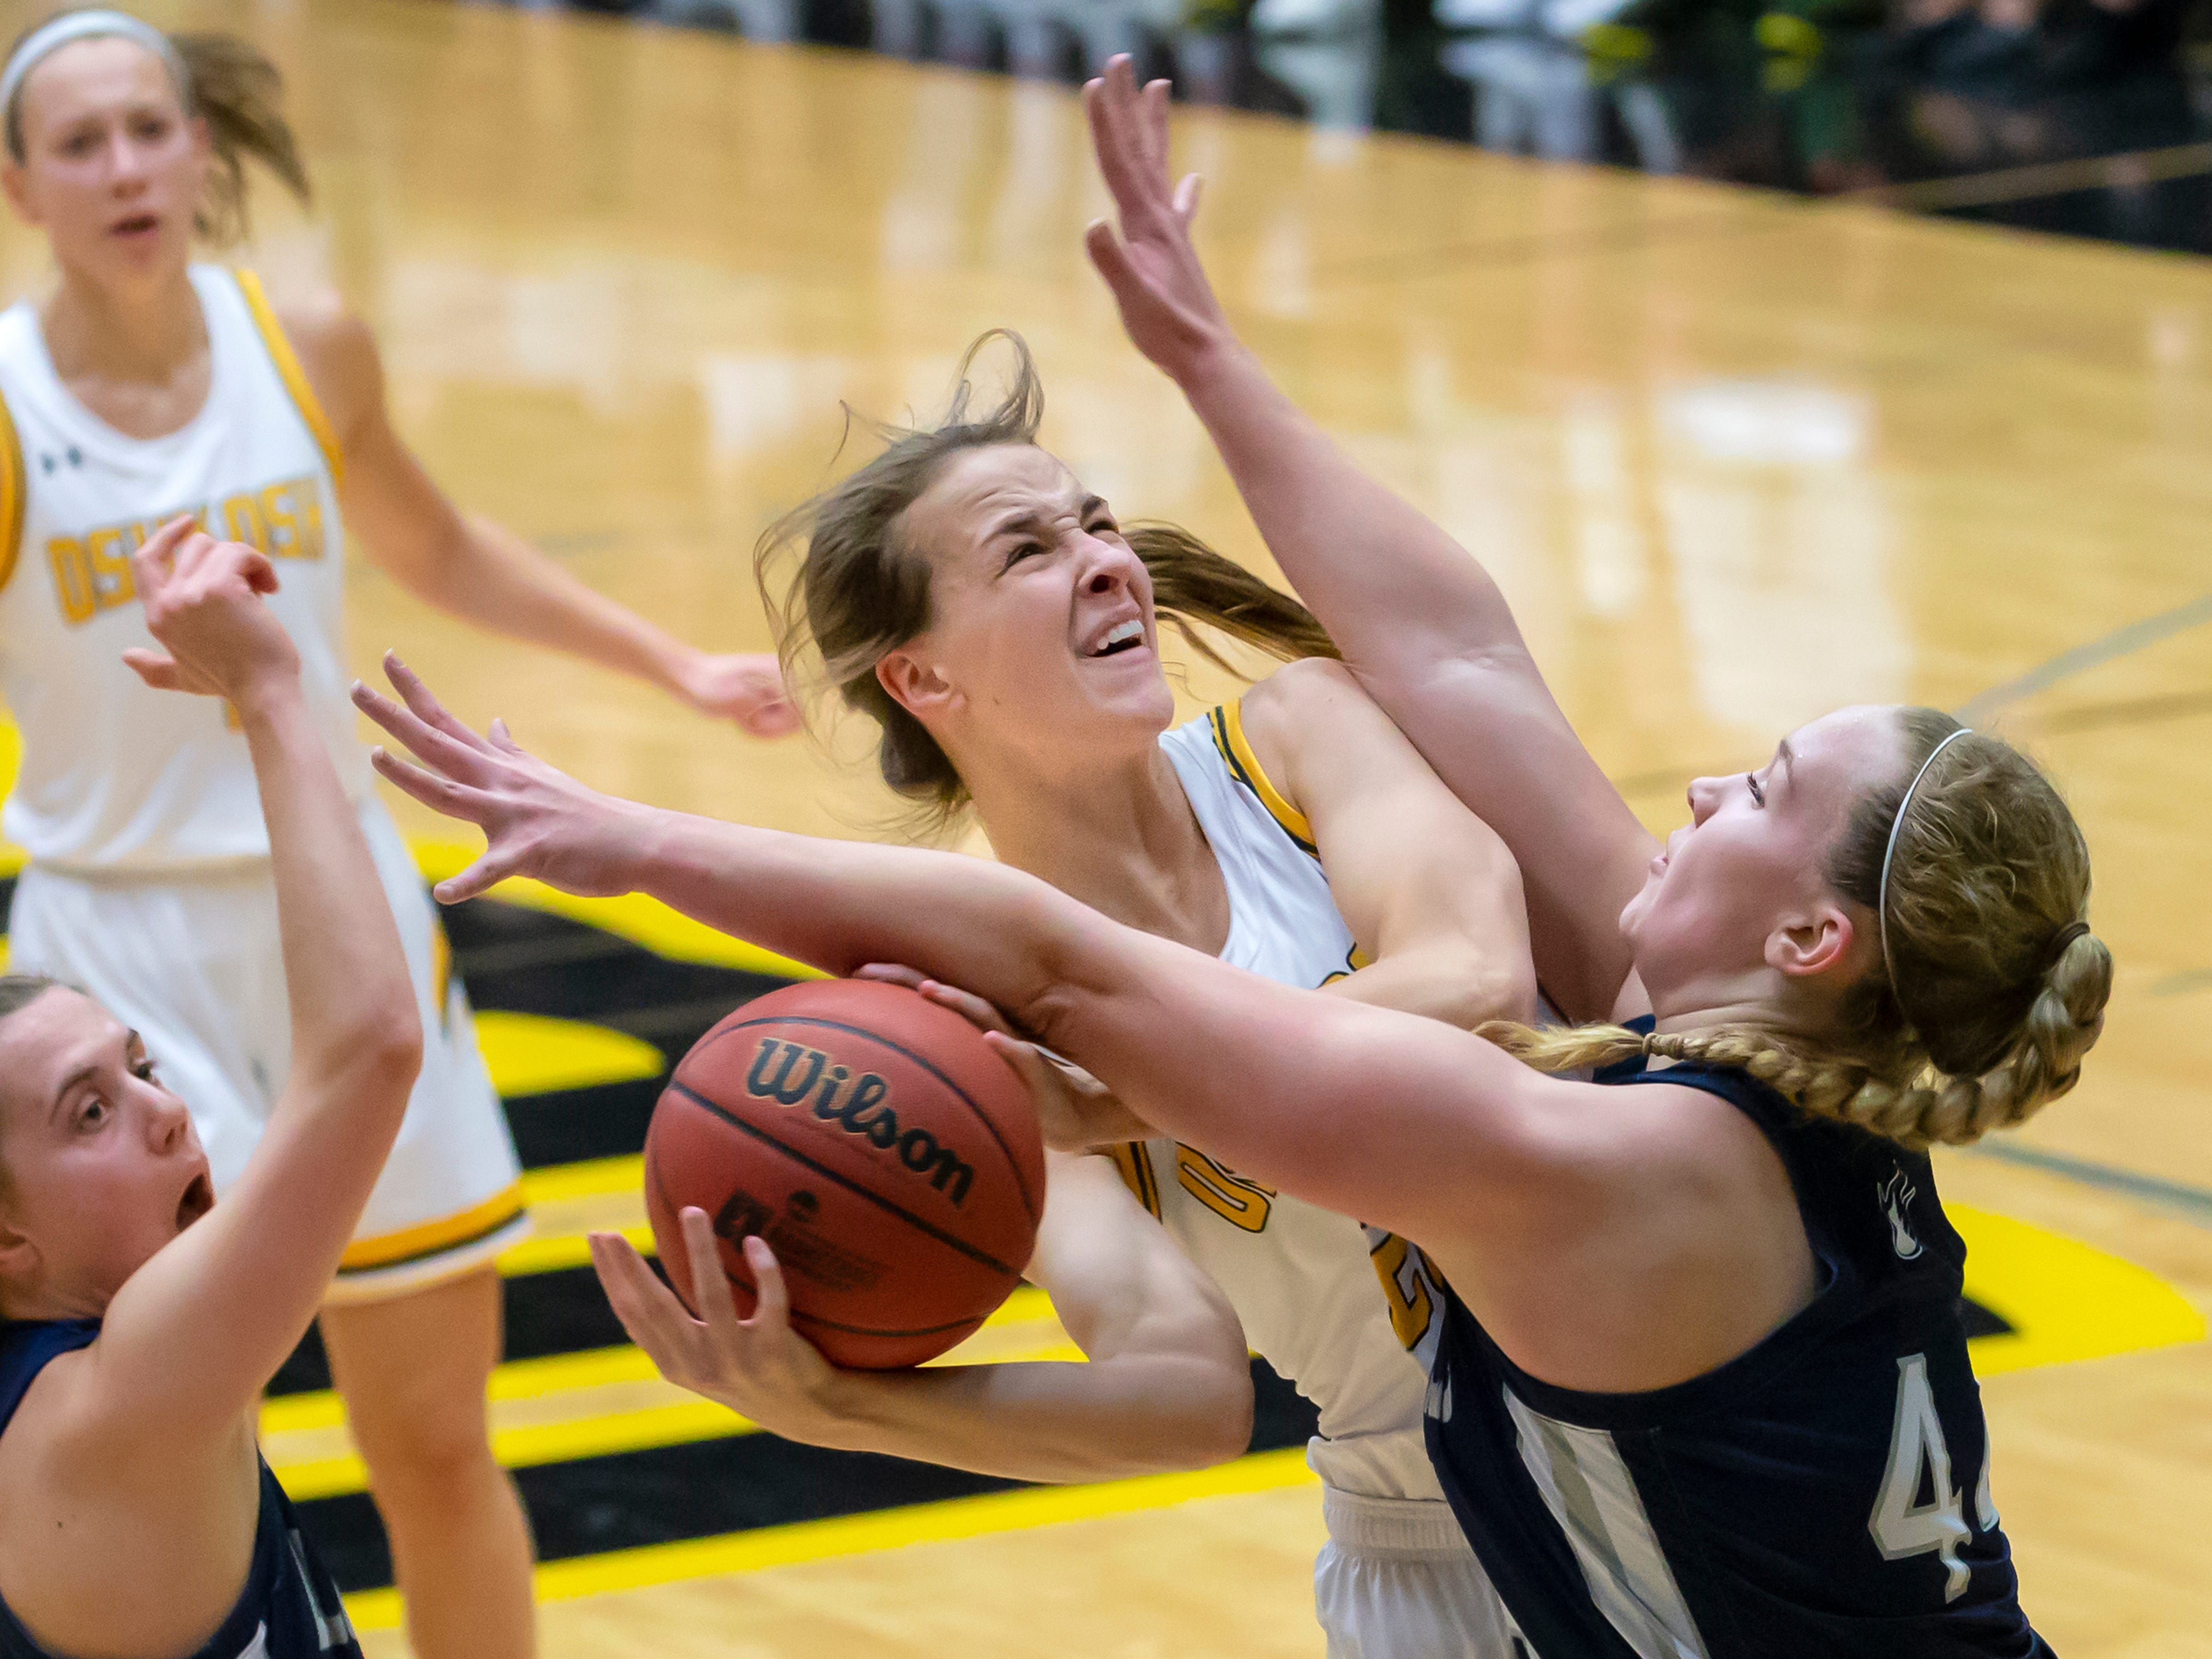 UW-Stout's Emily Jacques (hometown Oshkosh) blocks the shot attempt by UW-Oshkosh's Jessie Rabas (hometown De Pere) at the Kolf Sports Center on Saturday, January 5, 2019.